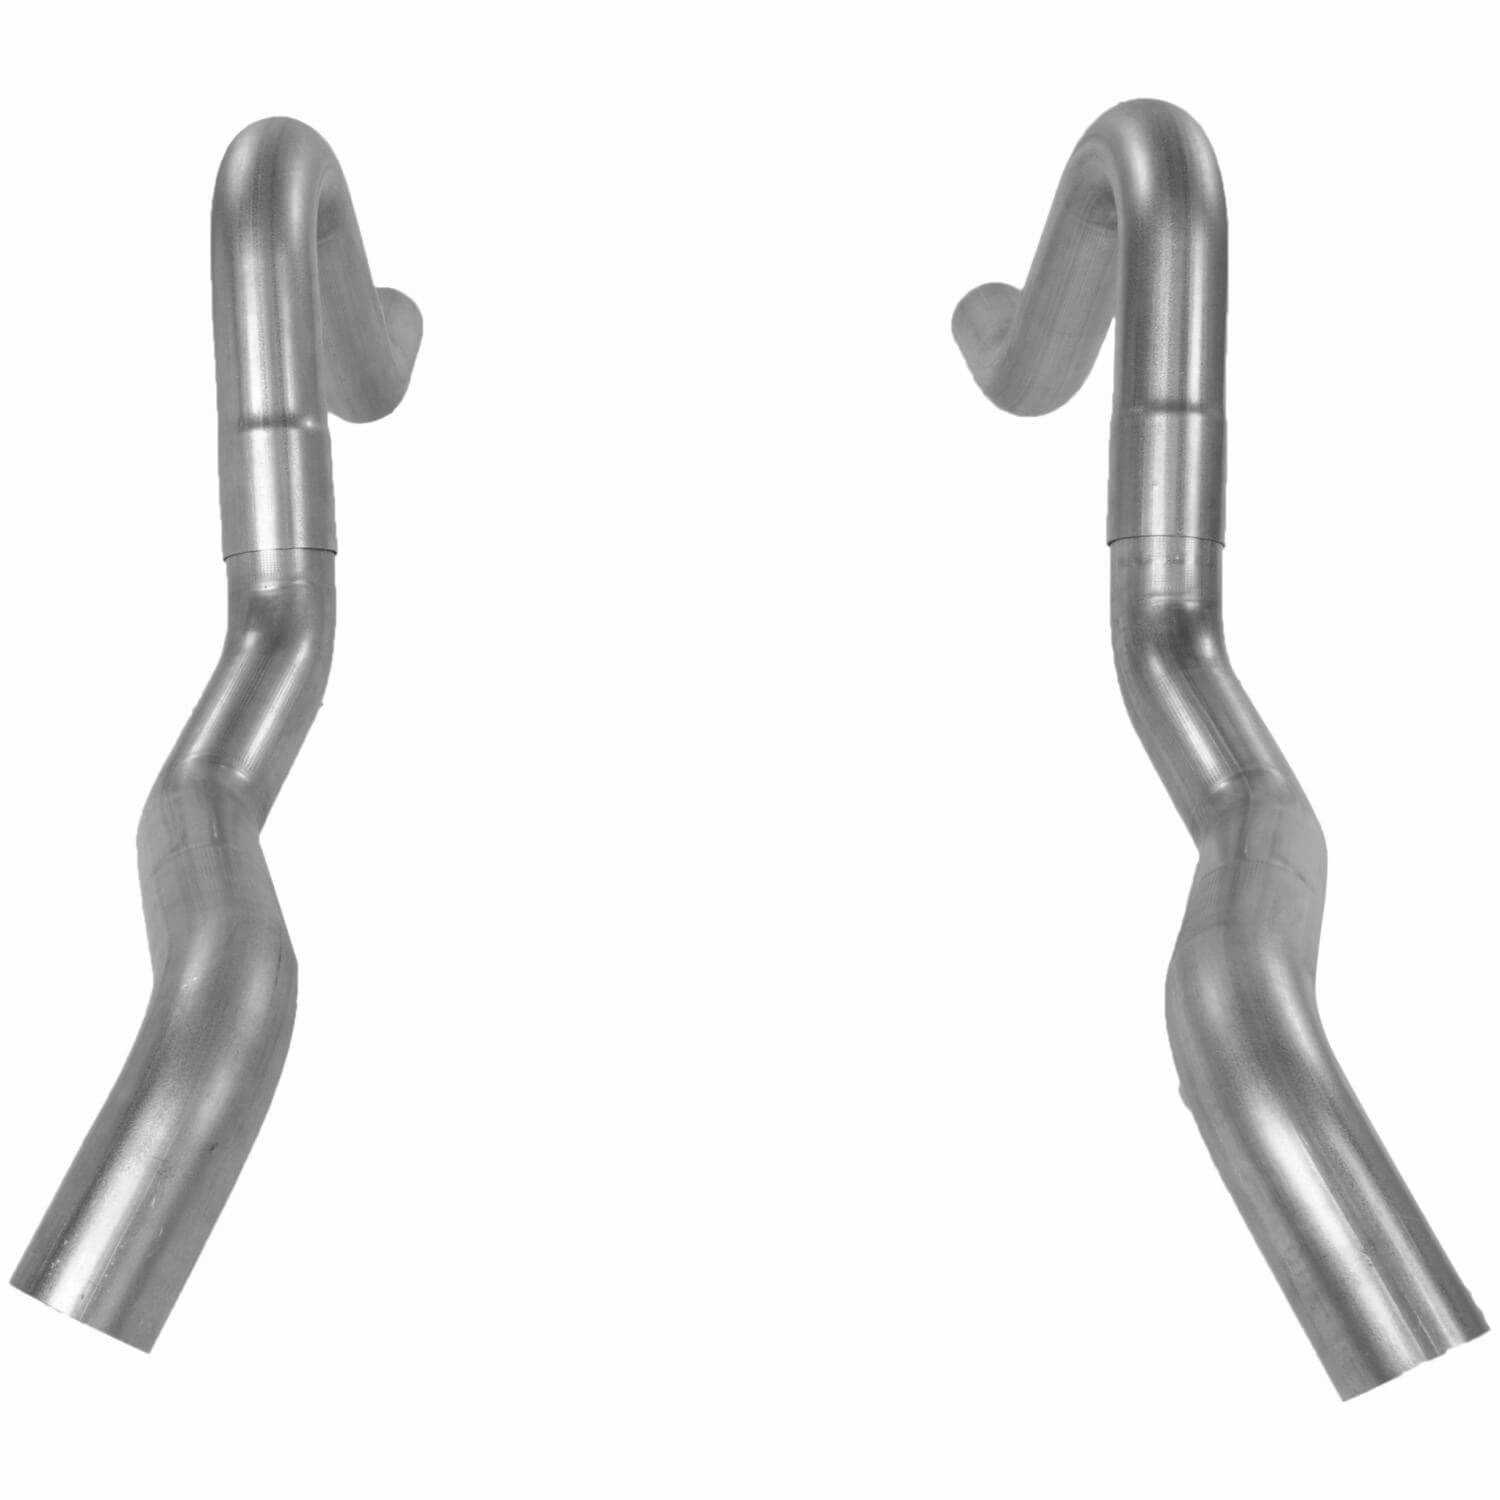 15819 Flowmaster Tailpipe Set